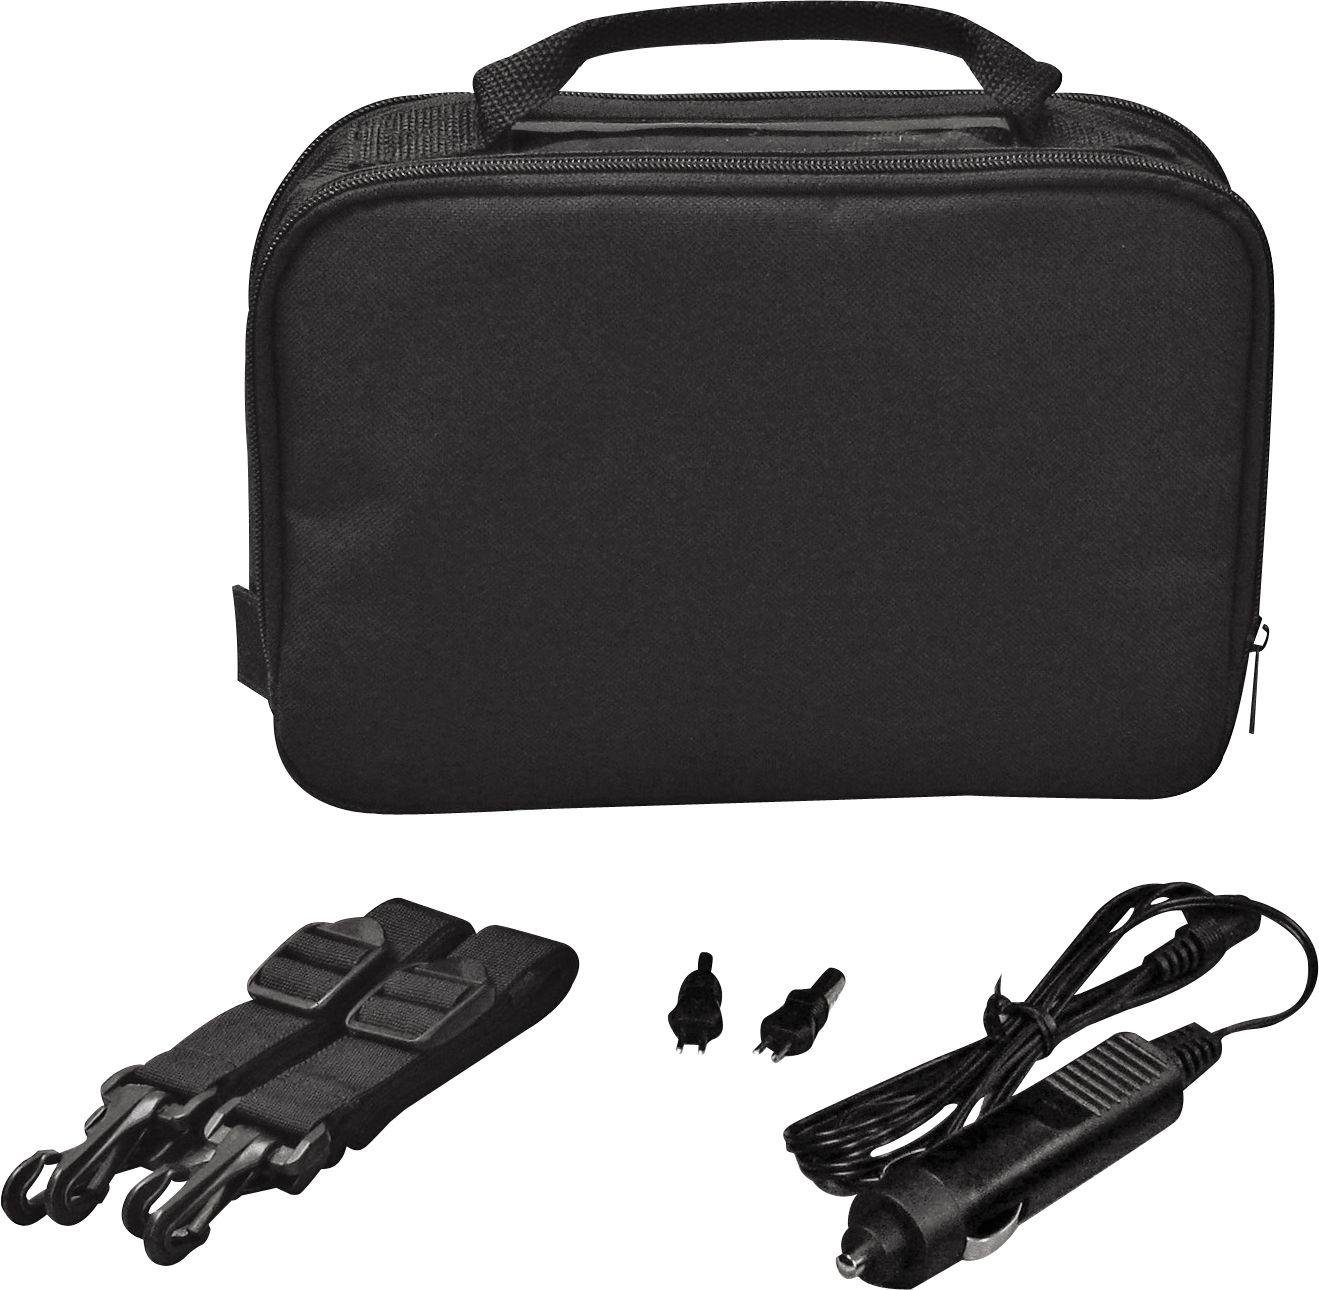 Image of 10 Inch - Gadget Bag with - Car Charger - Black